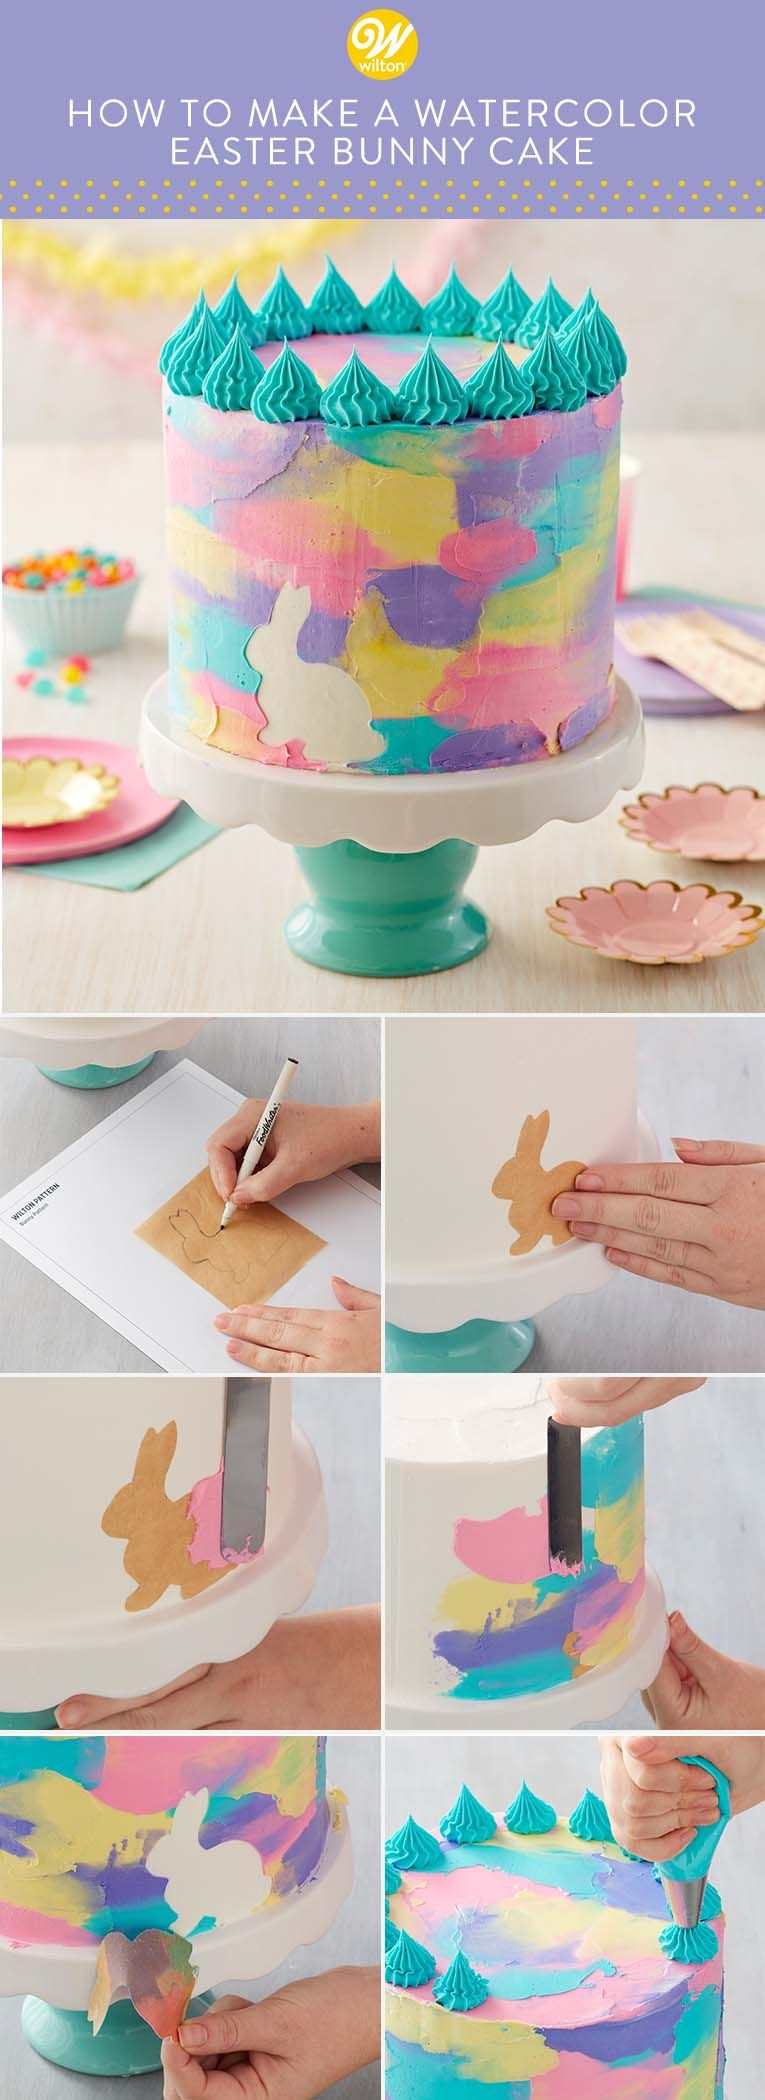 Decorated With Pastel Pink Teal Yellow And Purple Icing This